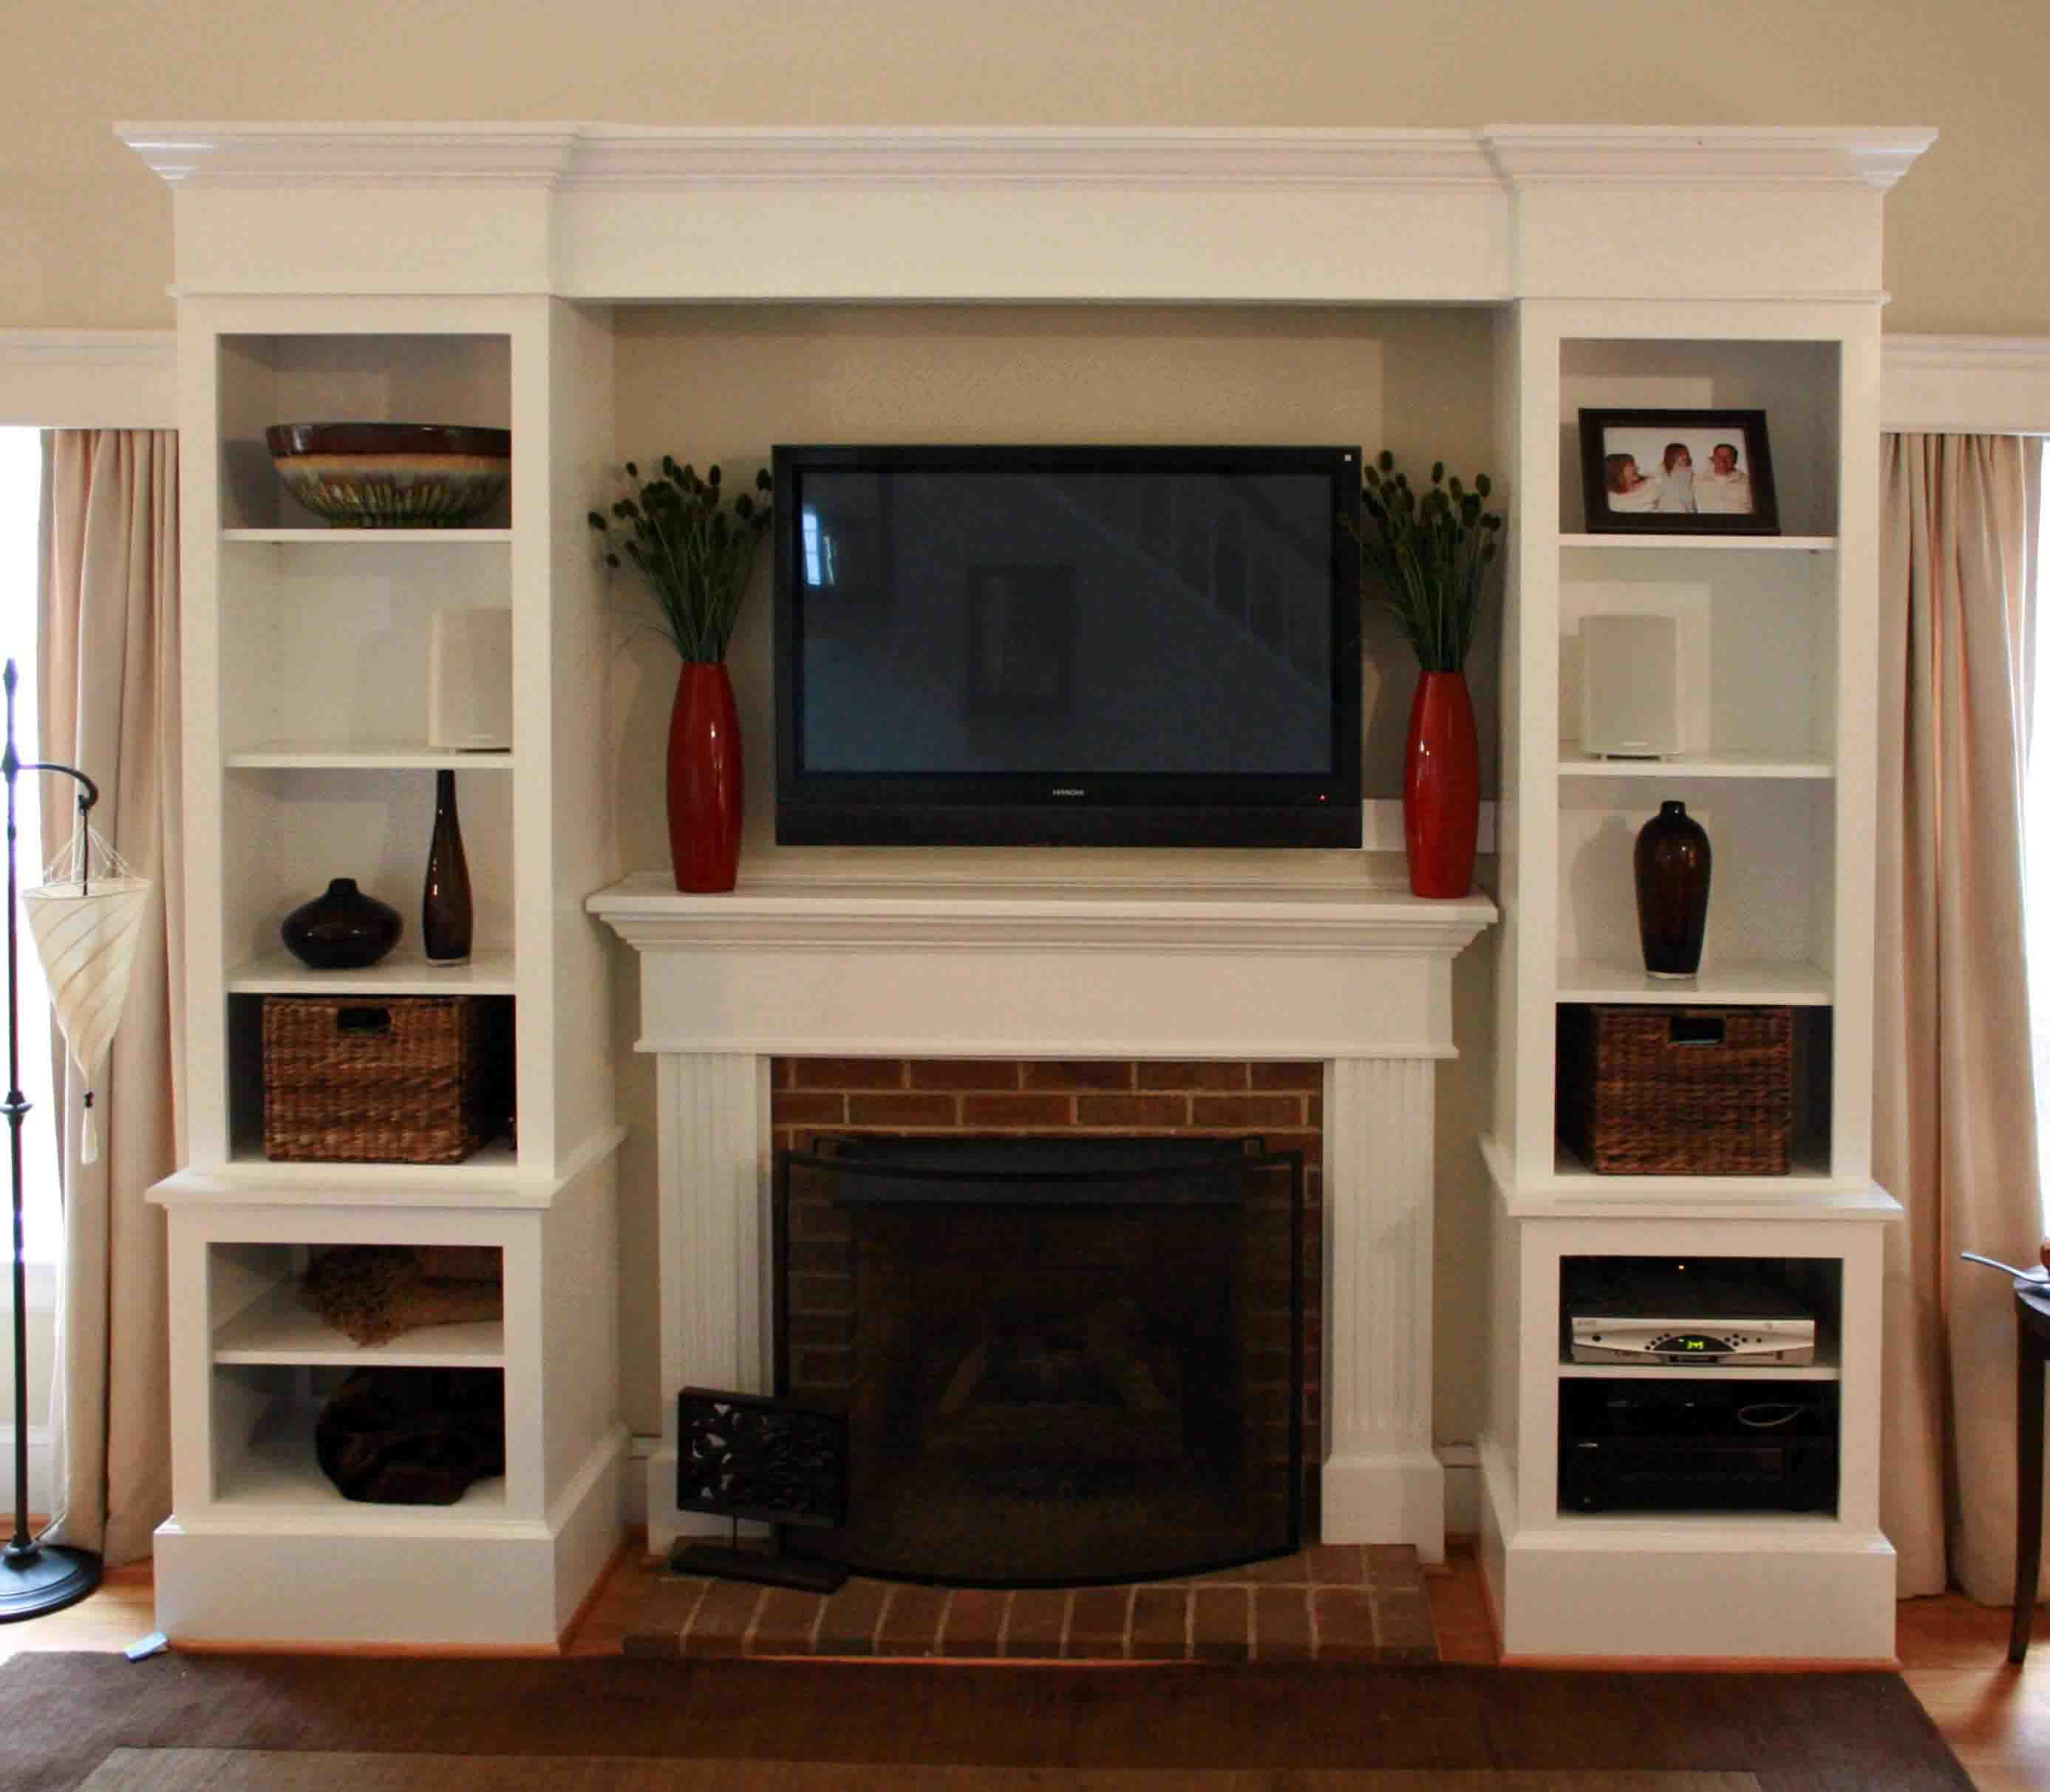 Corner Fireplace Entertainment Center Ideas | For the home ...